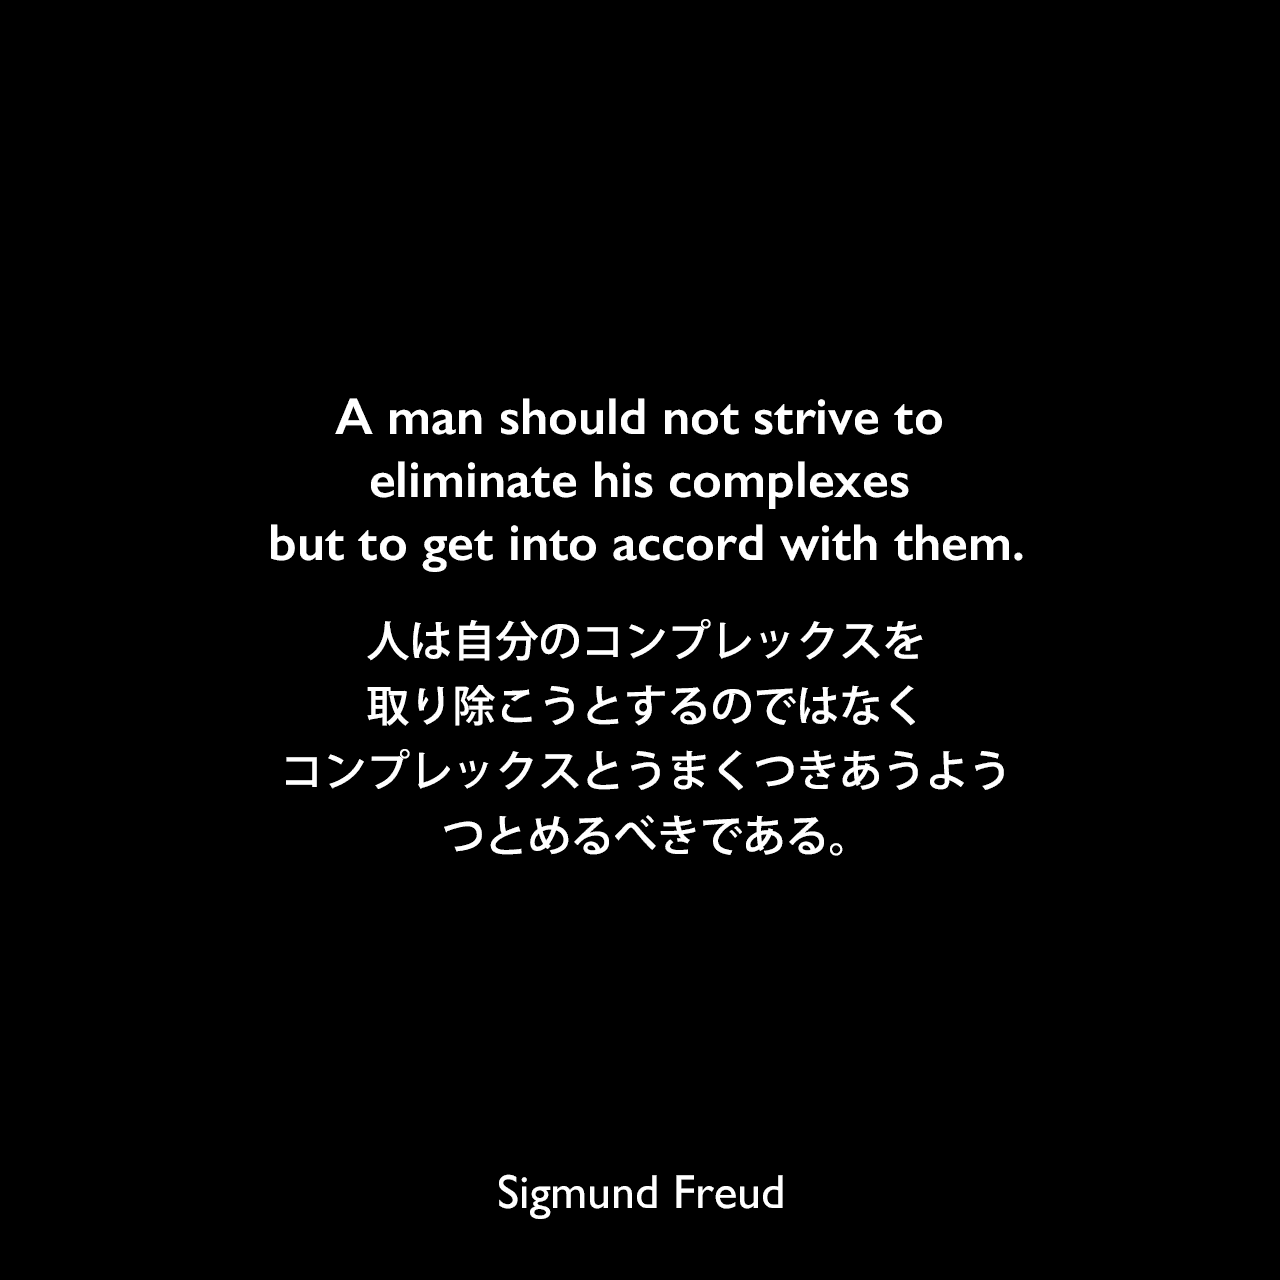 A man should not strive to eliminate his complexes but to get into accord with them.人は自分のコンプレックスを取り除こうとするのではなく、コンプレックスとうまくつきあうようつとめるべきである。Sigmund Freud